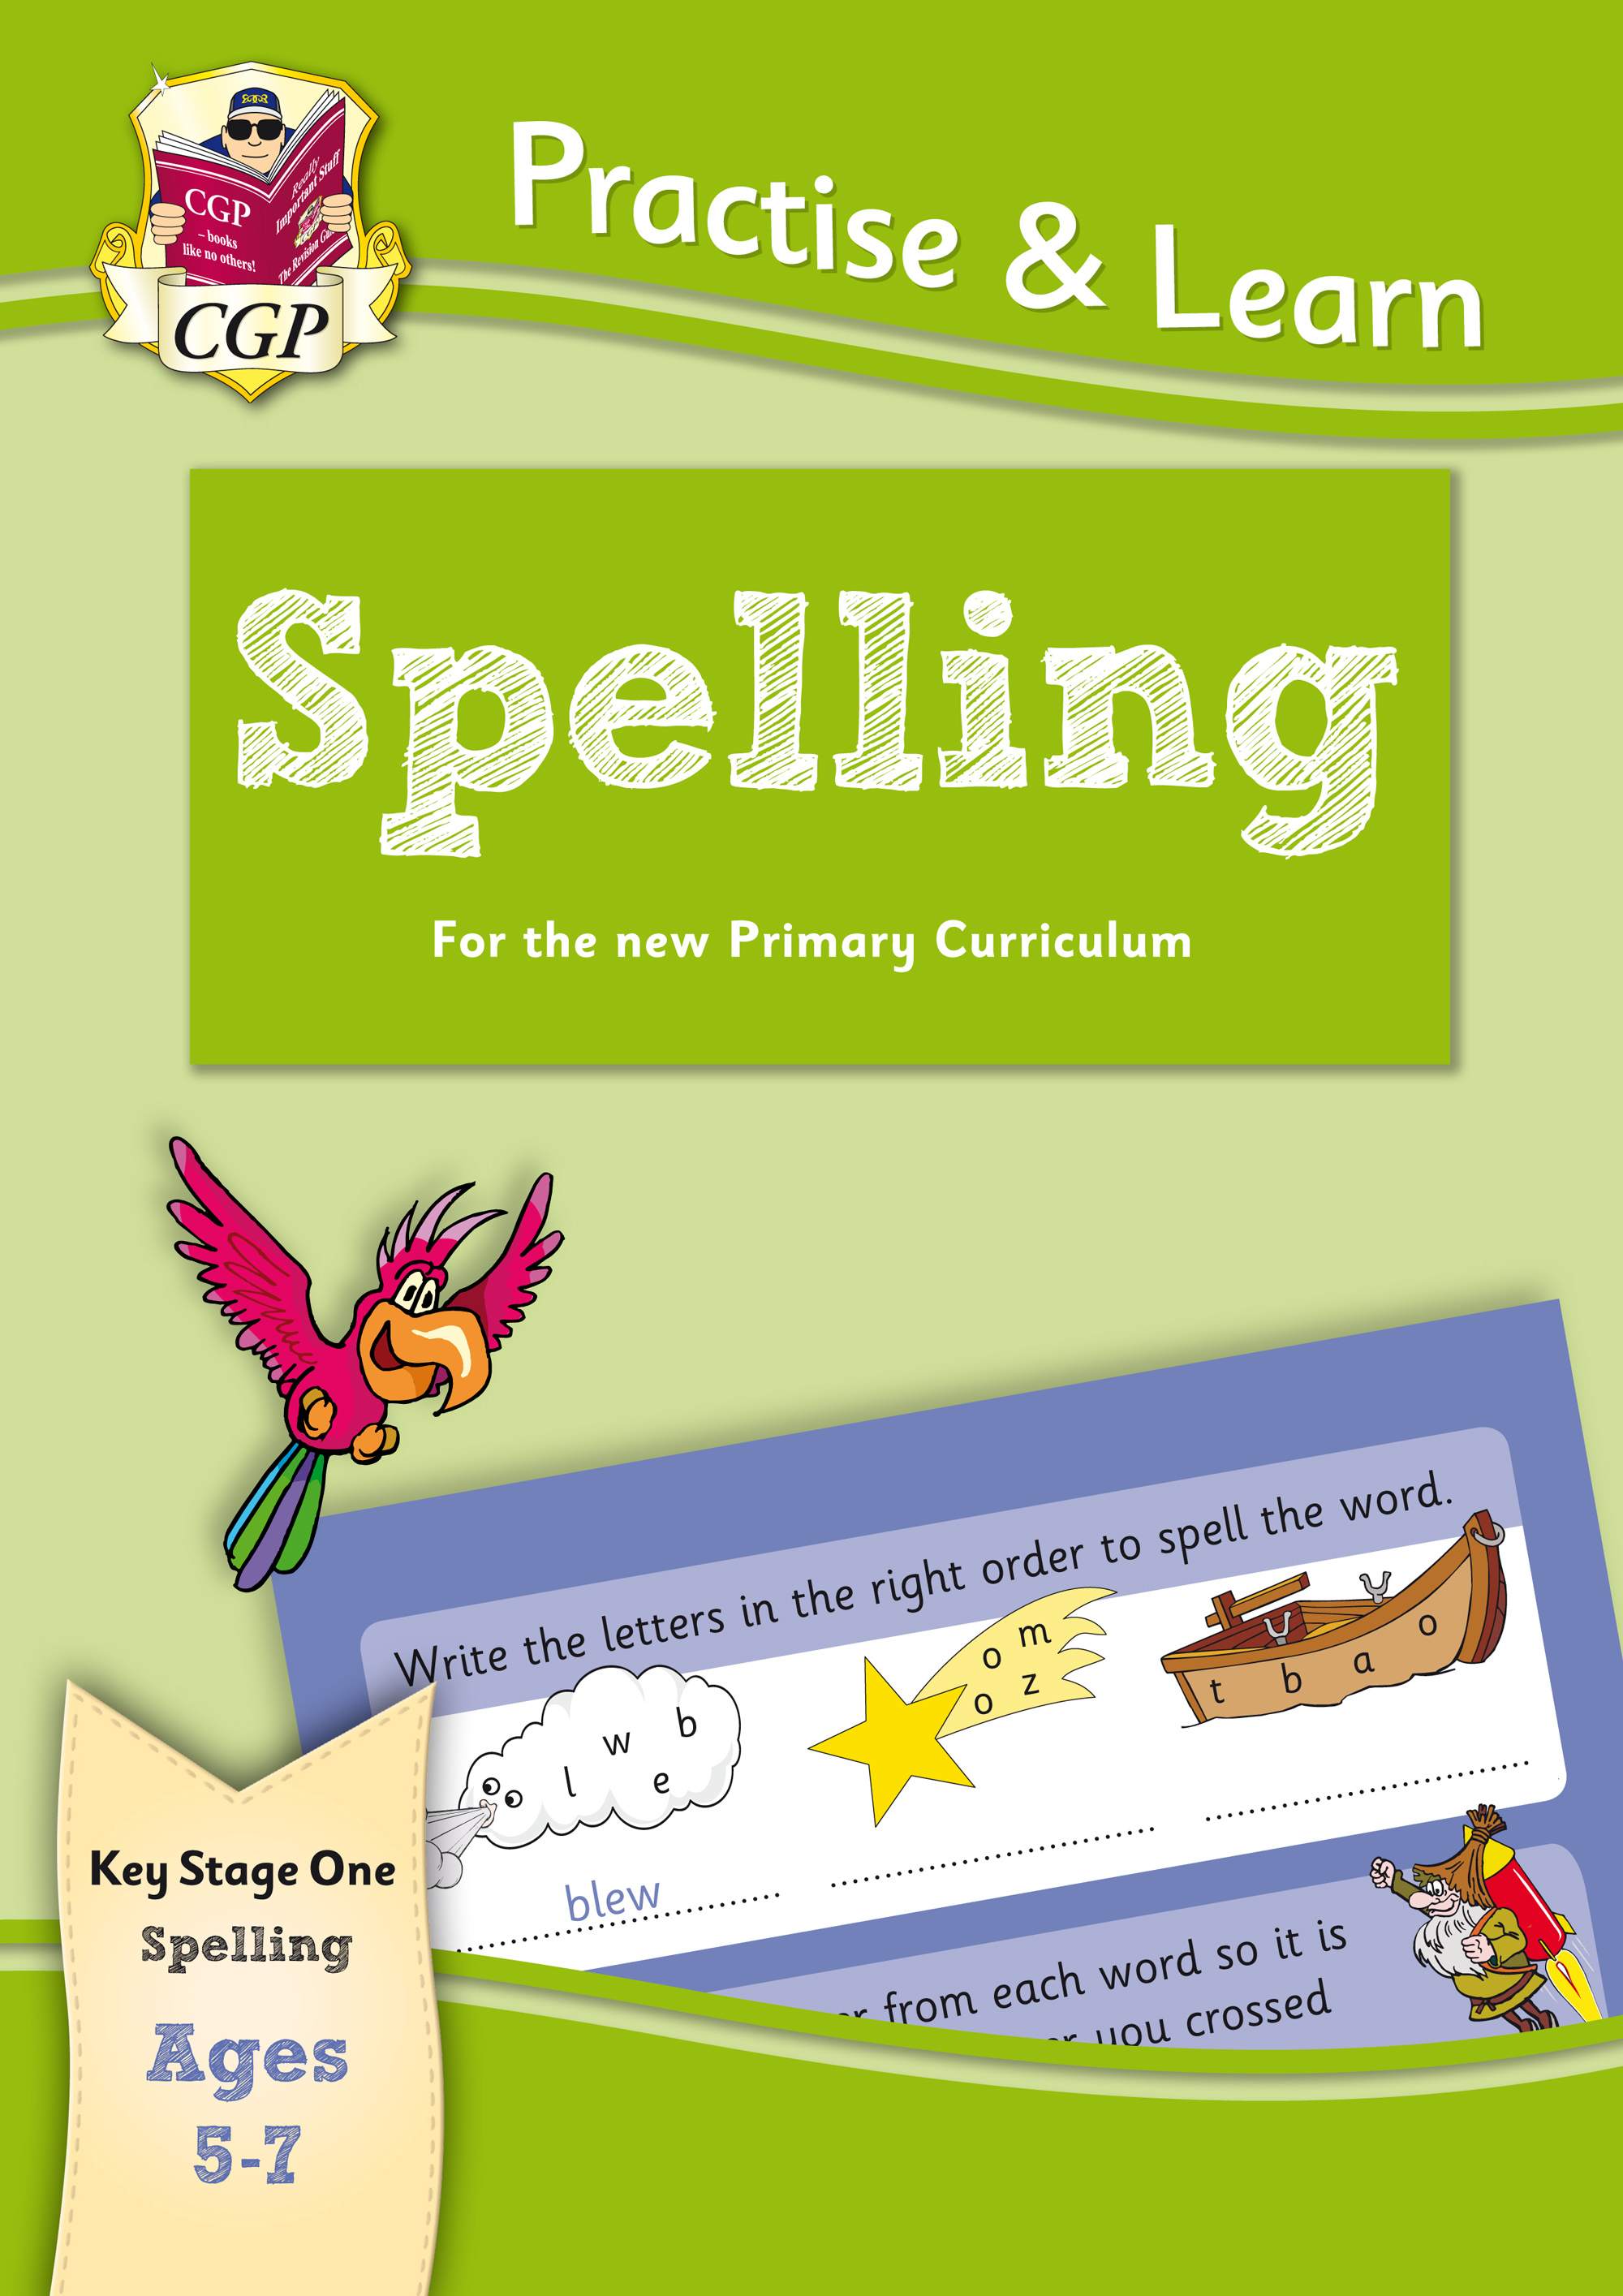 EPS12 - New Practise & Learn: Spelling for Ages 5-7